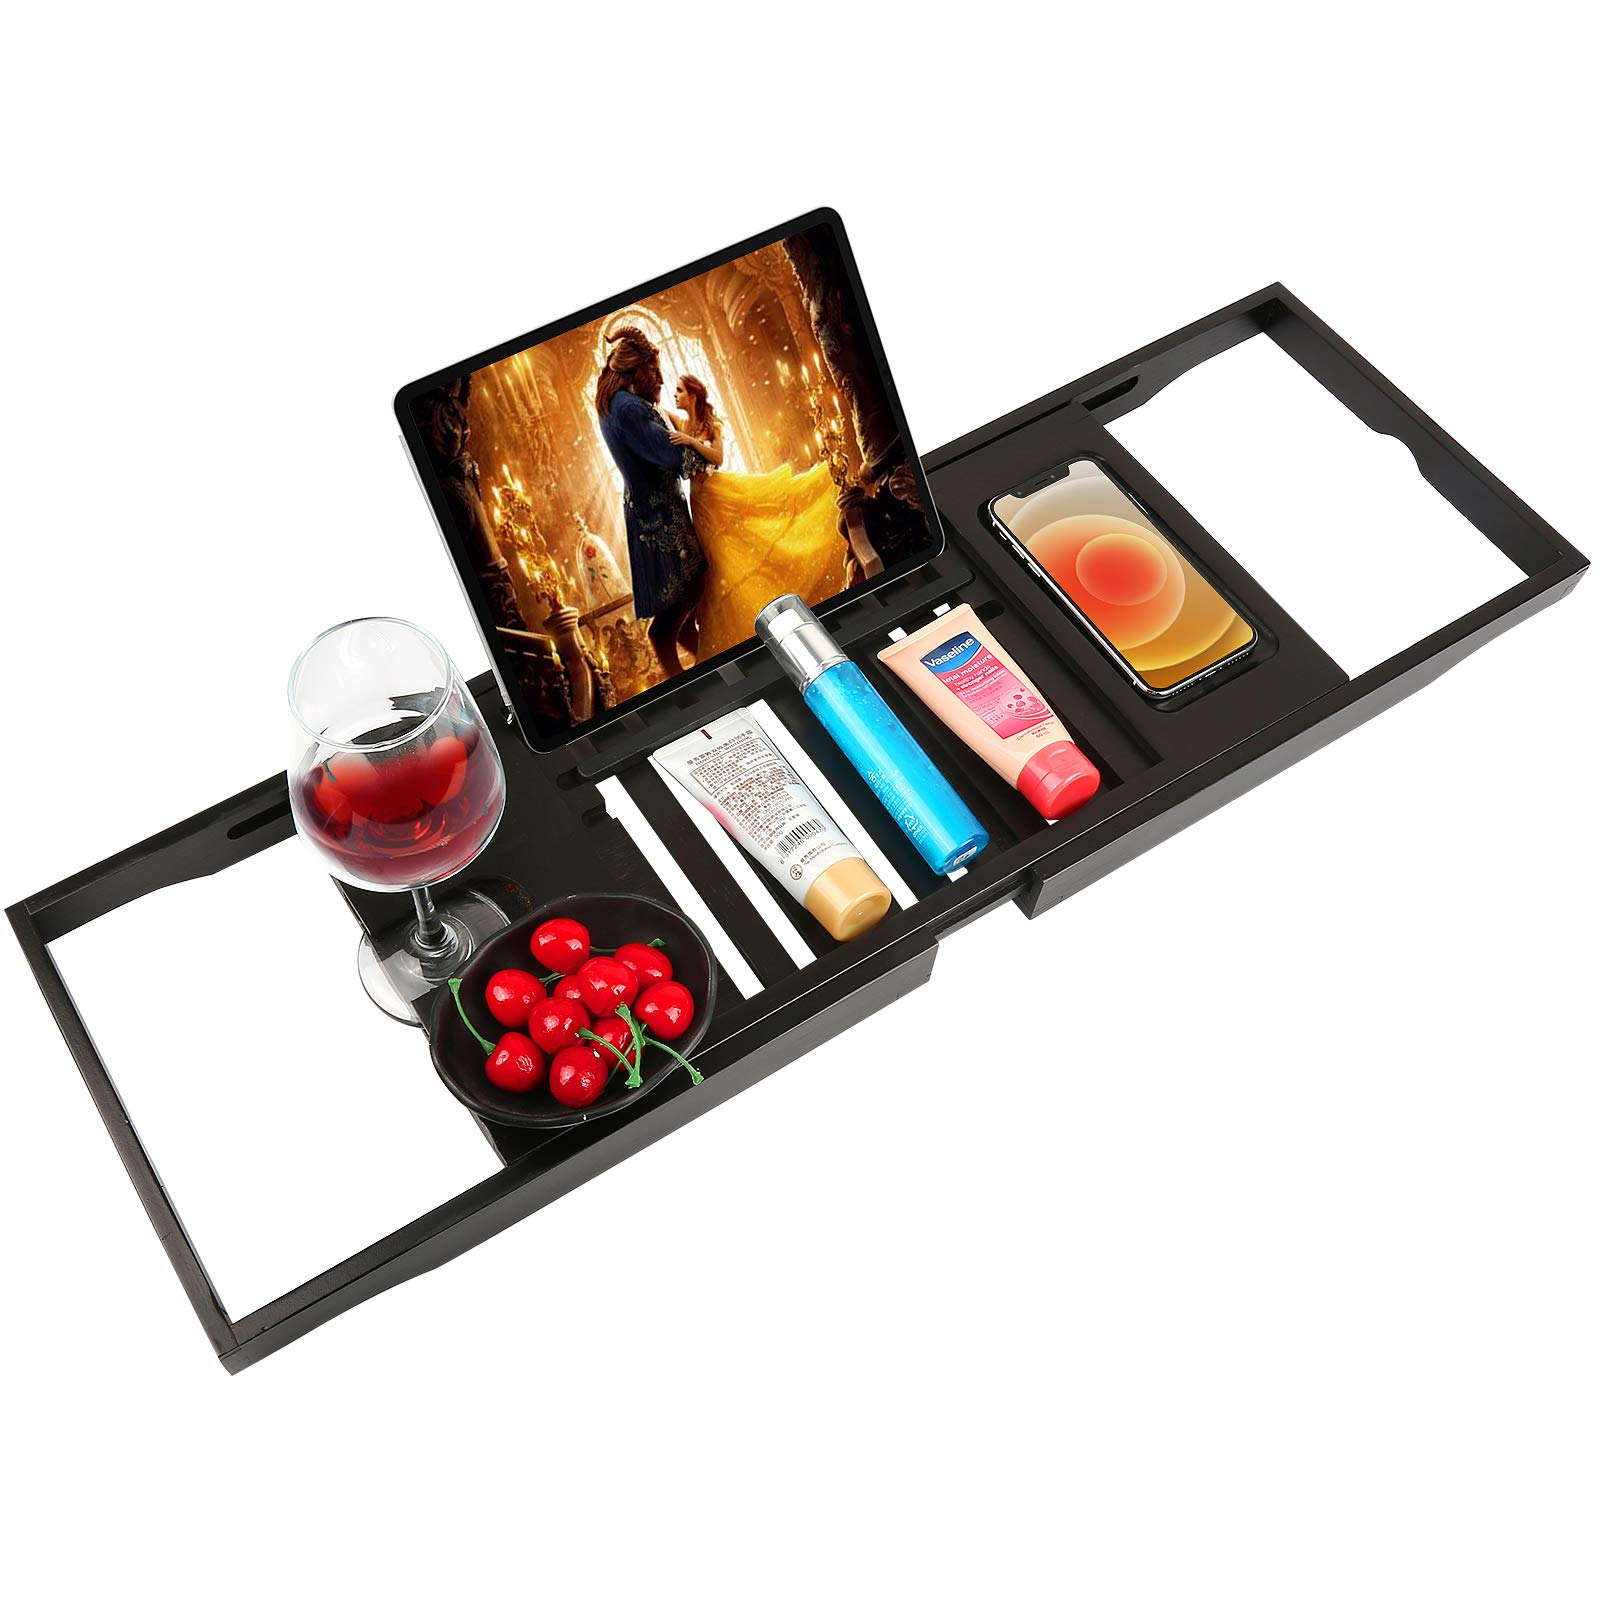 Bathtub Tray Bamboo Bathtub Caddy Tray with Extending Sides Adjustable Book Holder with Premium Luxury Tray Organizer for Phone and Wineglass (Black)